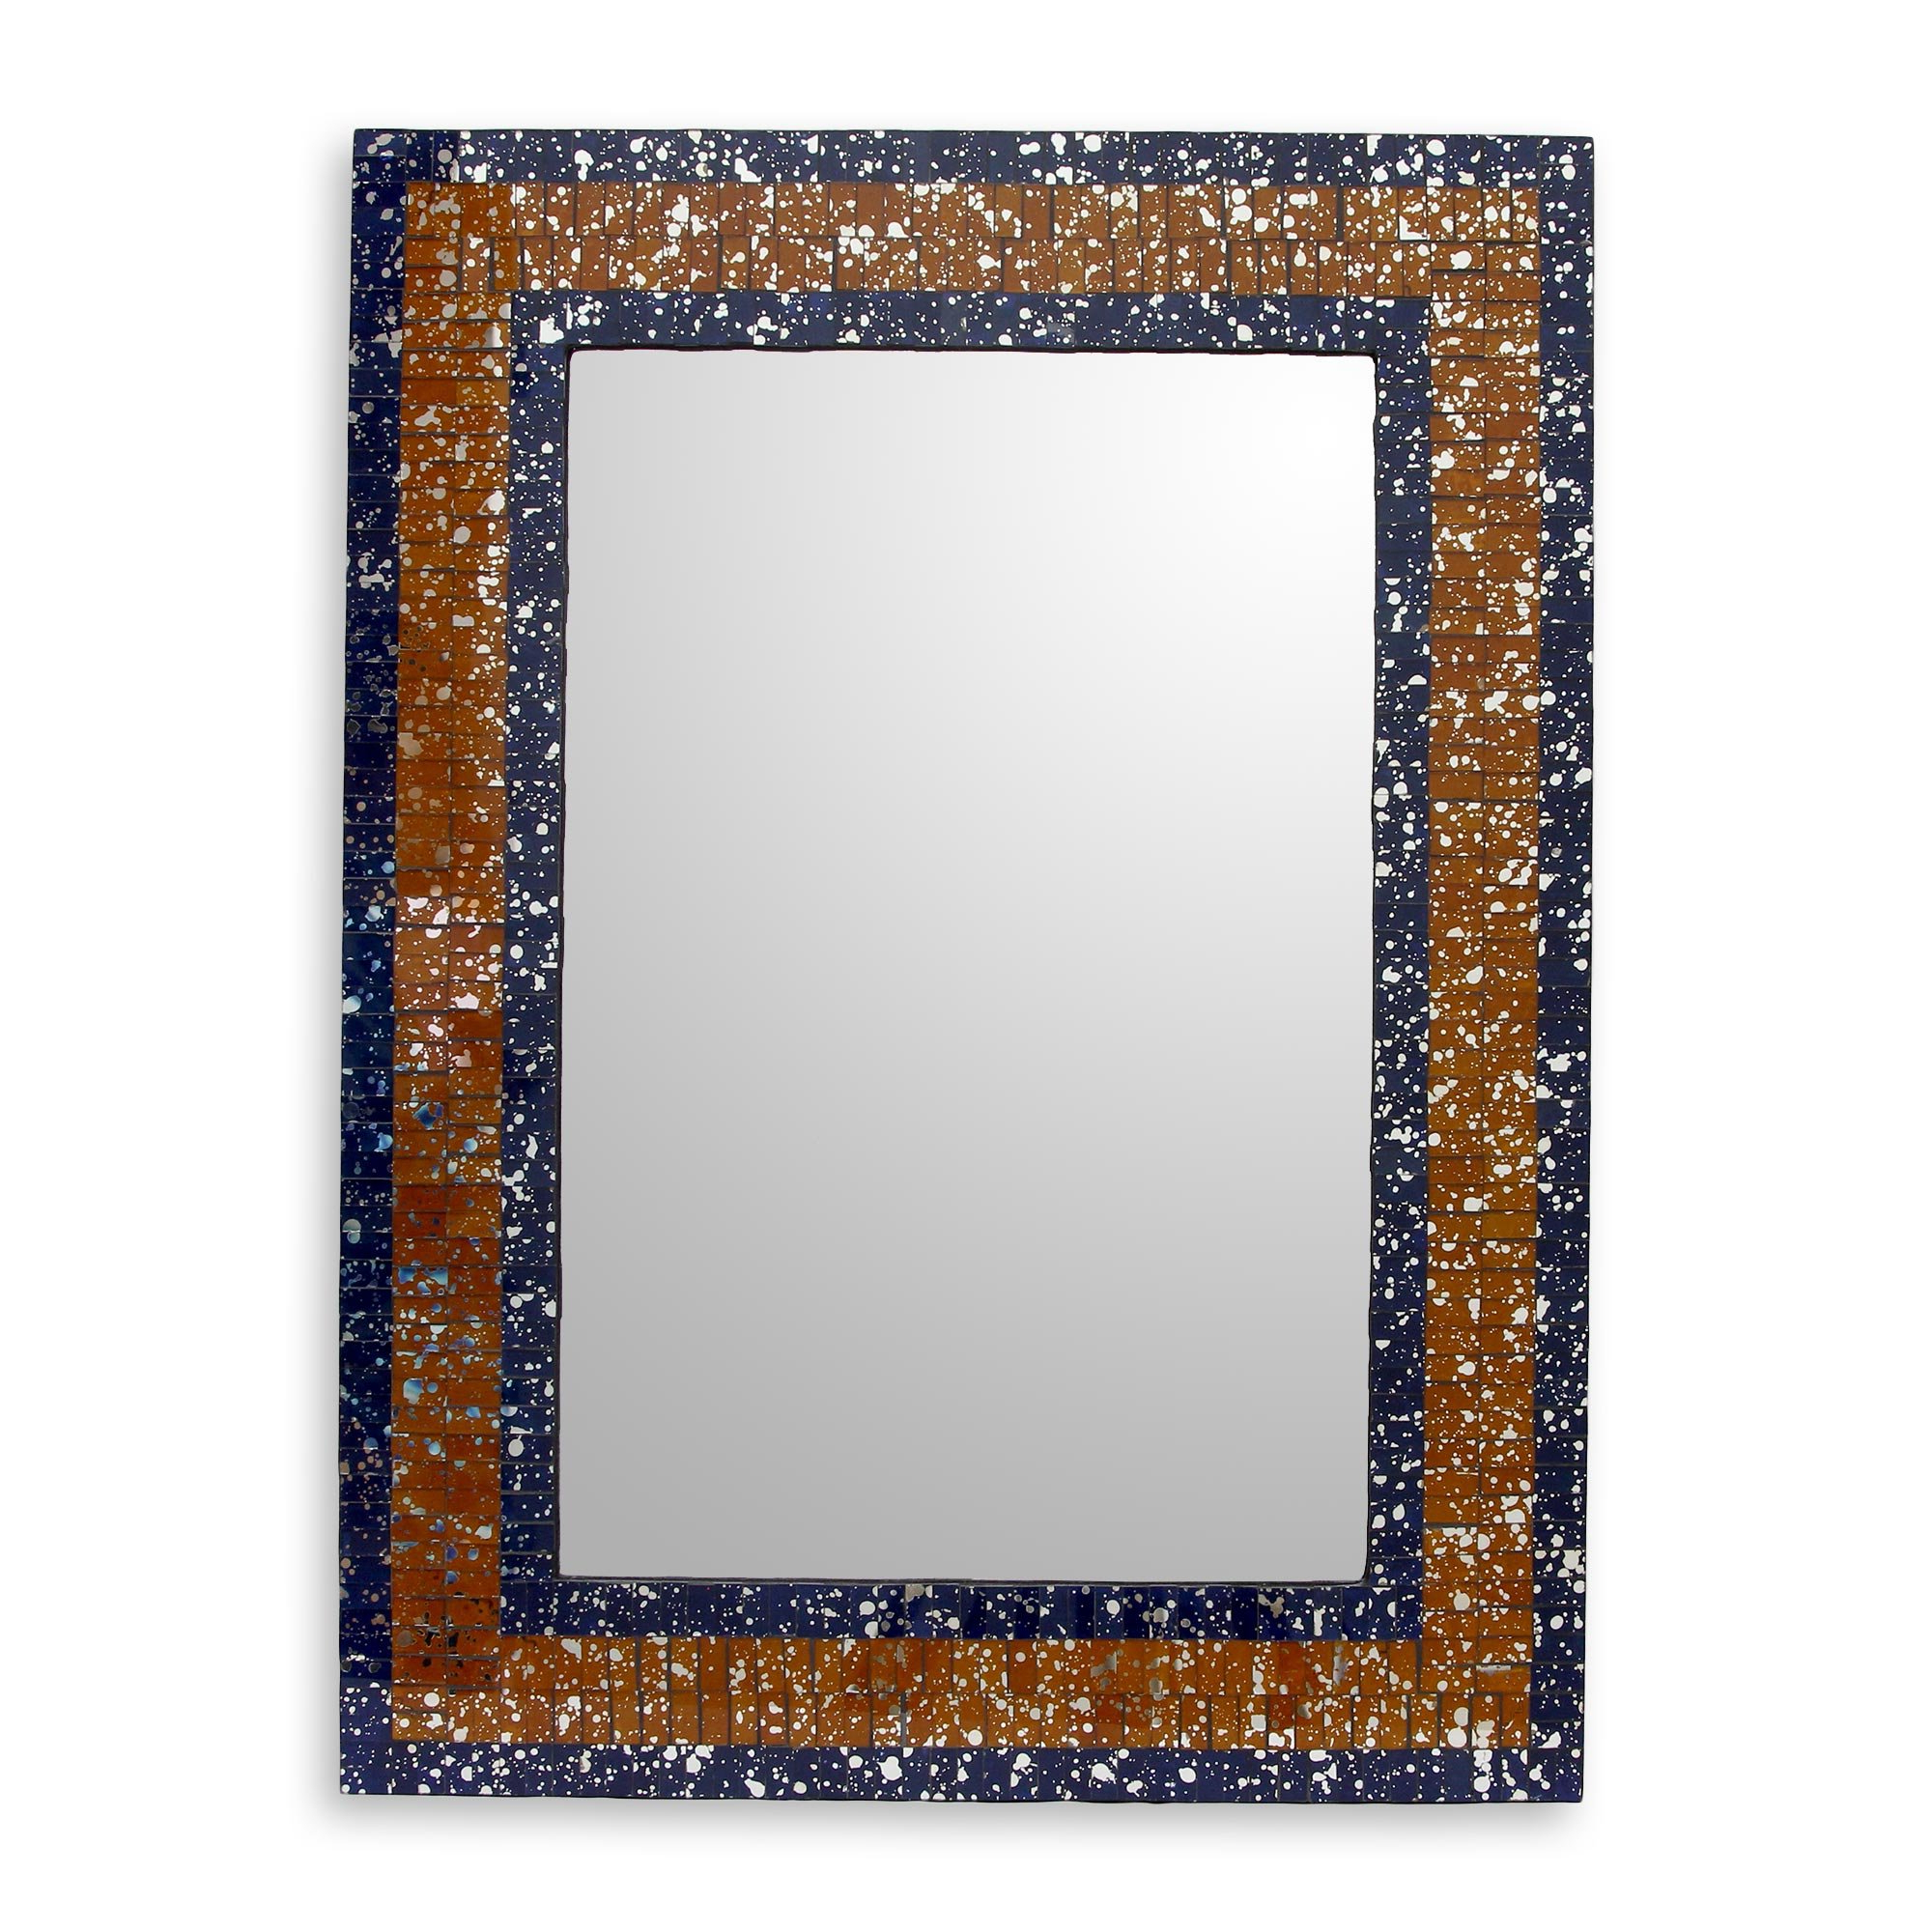 2020 Mosaic Framed Wall Mirrors For Glass Mosaic Mirror (View 2 of 20)